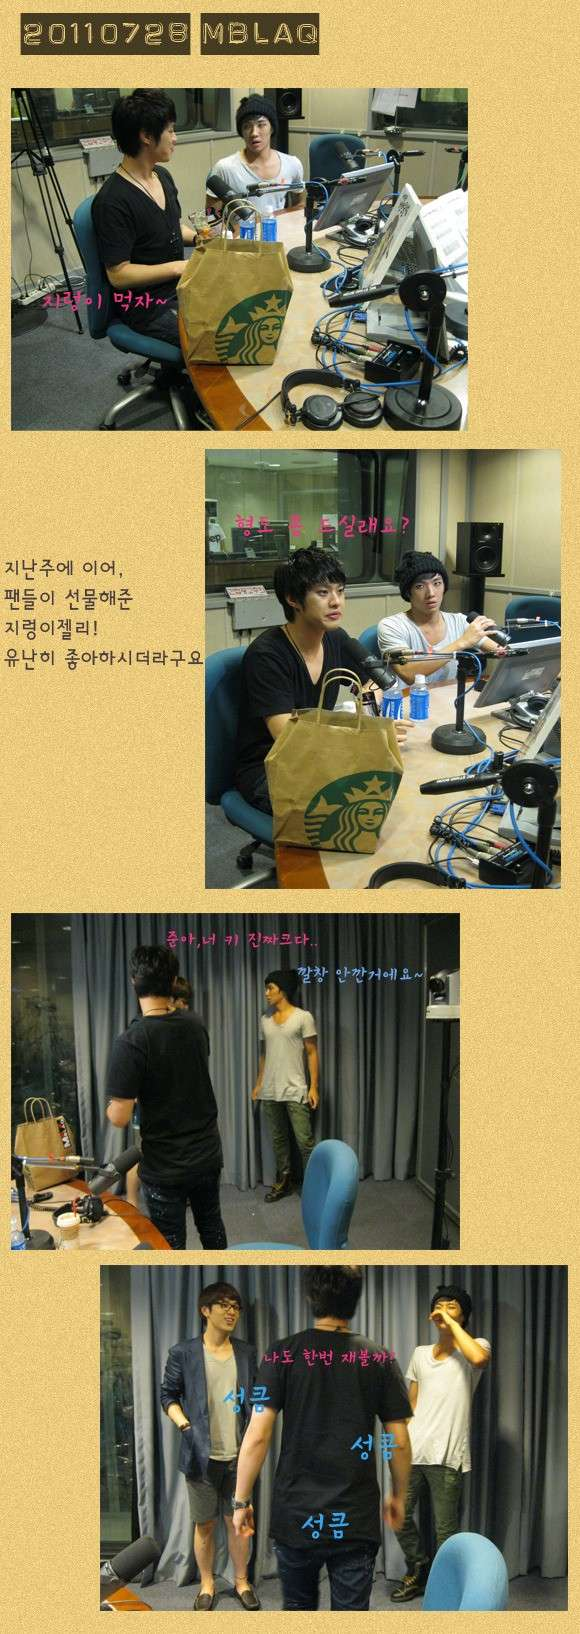 [ALL PICTURES] TenTen Sweet Sorrow Club Radio Img05012